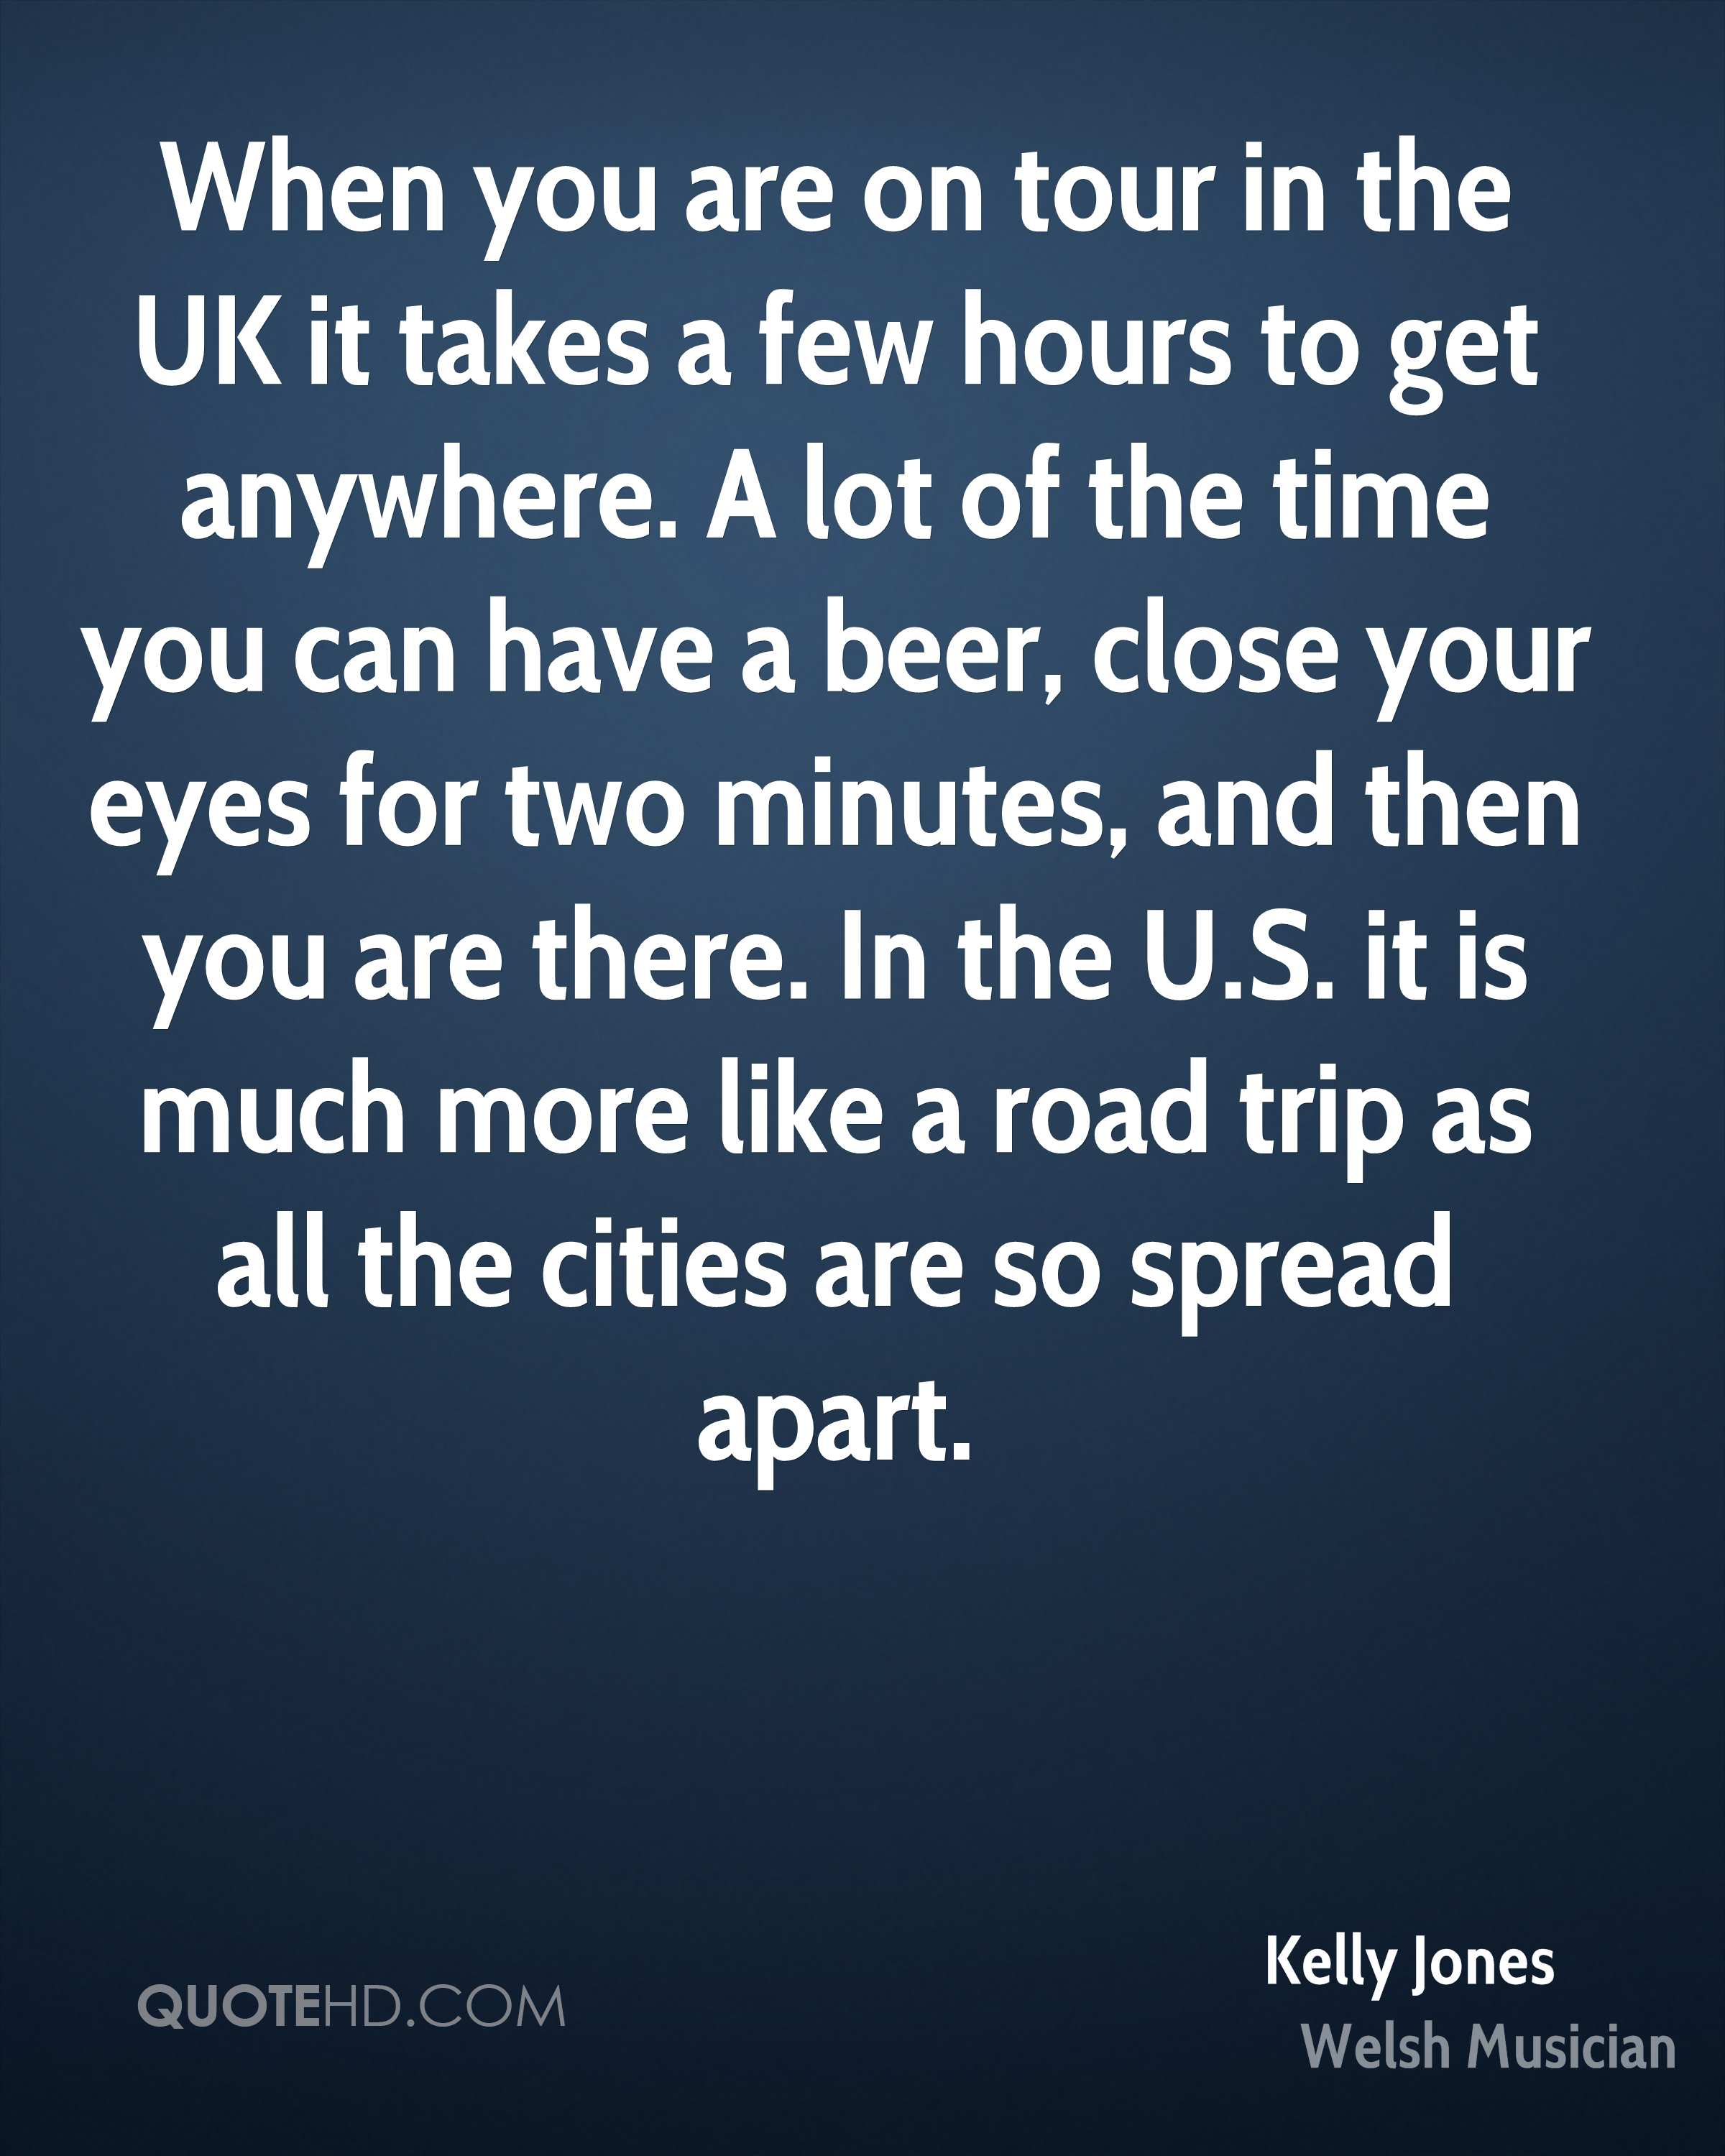 When you are on tour in the UK it takes a few hours to get anywhere. A lot of the time you can have a beer, close your eyes for two minutes, and then you are there. In the U.S. it is much more like a road trip as all the cities are so spread apart.